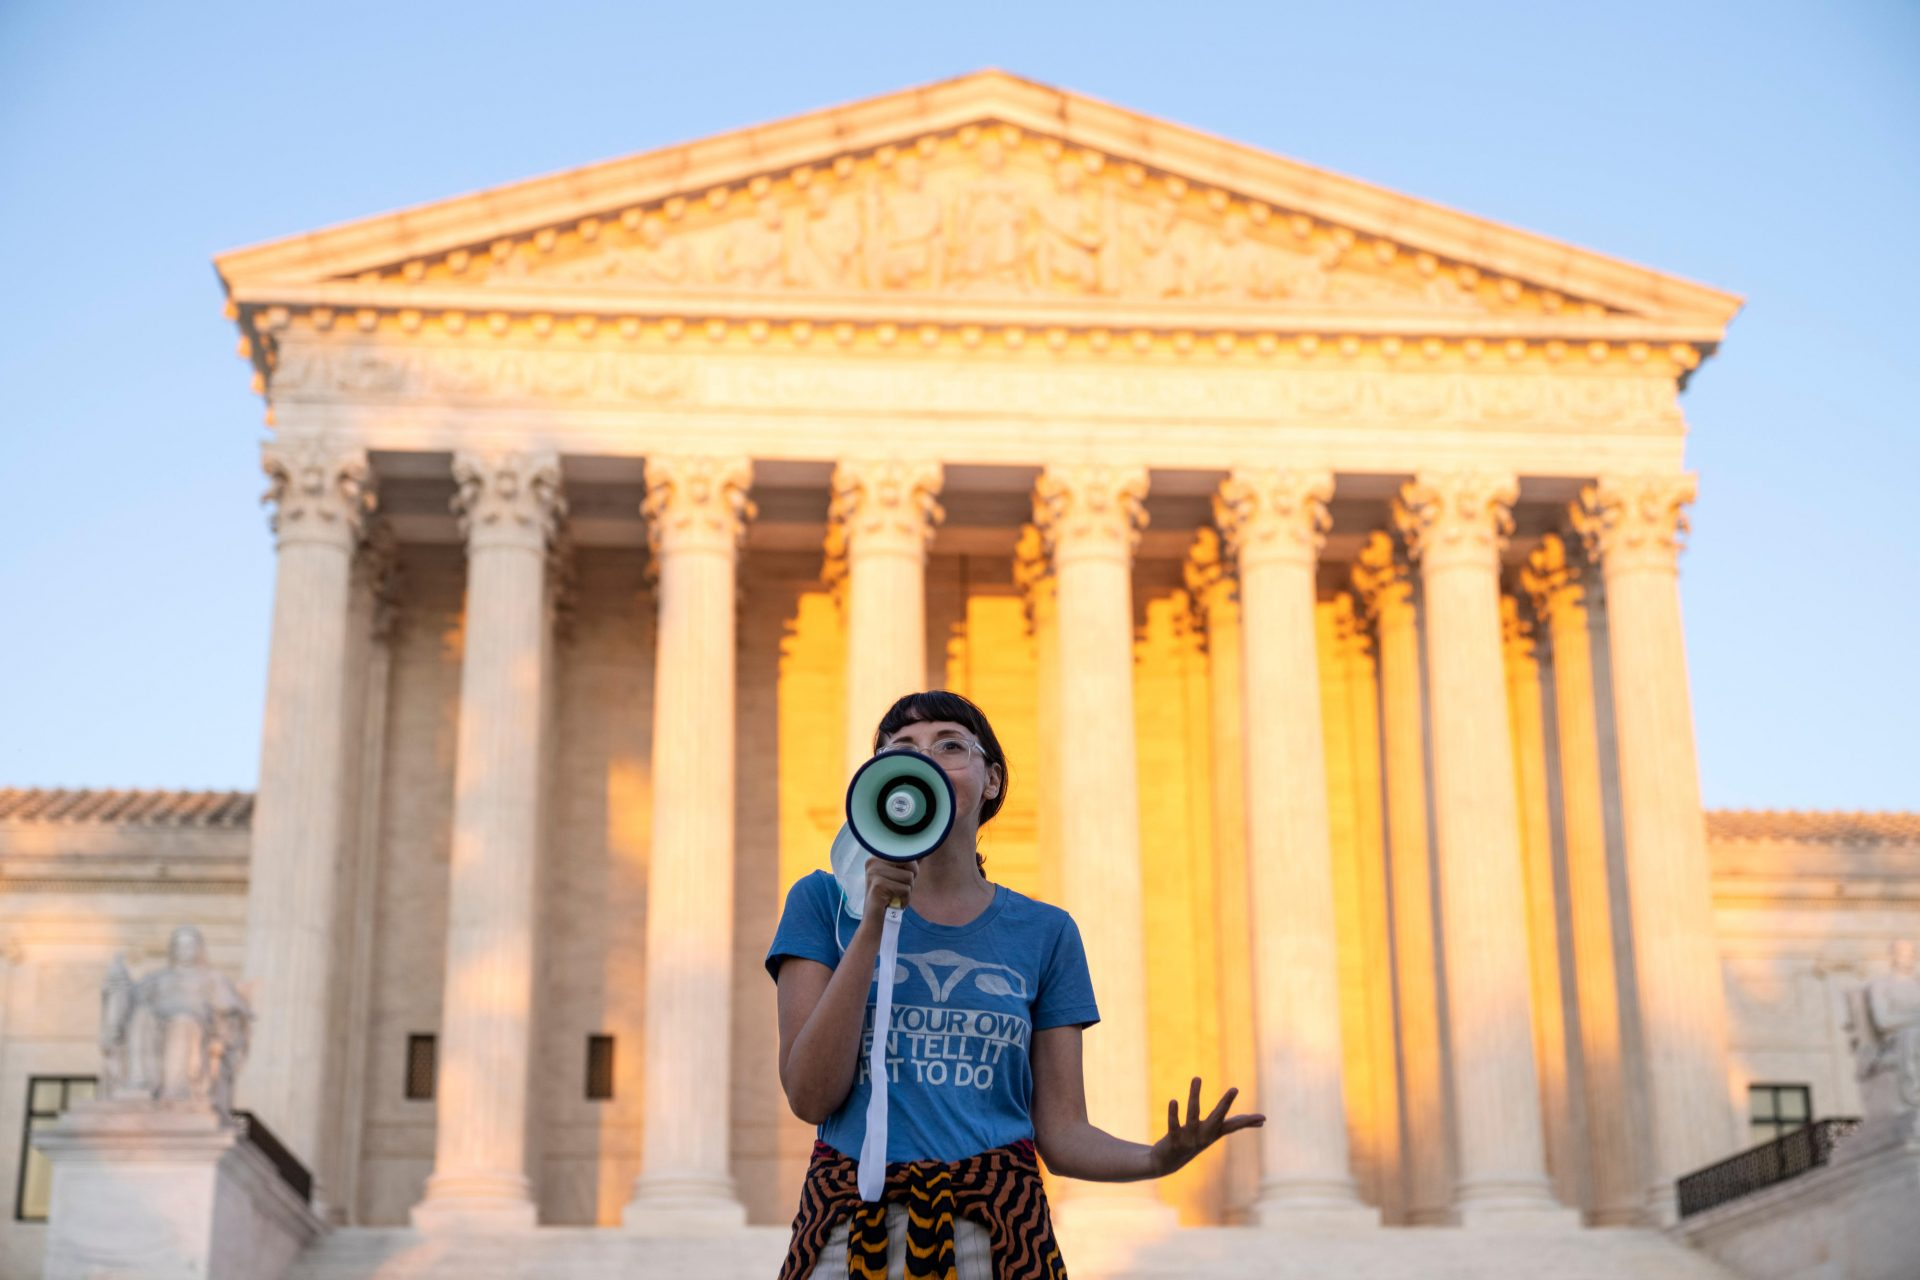 A pro-choice activist speaks outside the US Supreme Court in protest against the new Texas abortion law/ Photo: Drew Angerer/Getty Images.